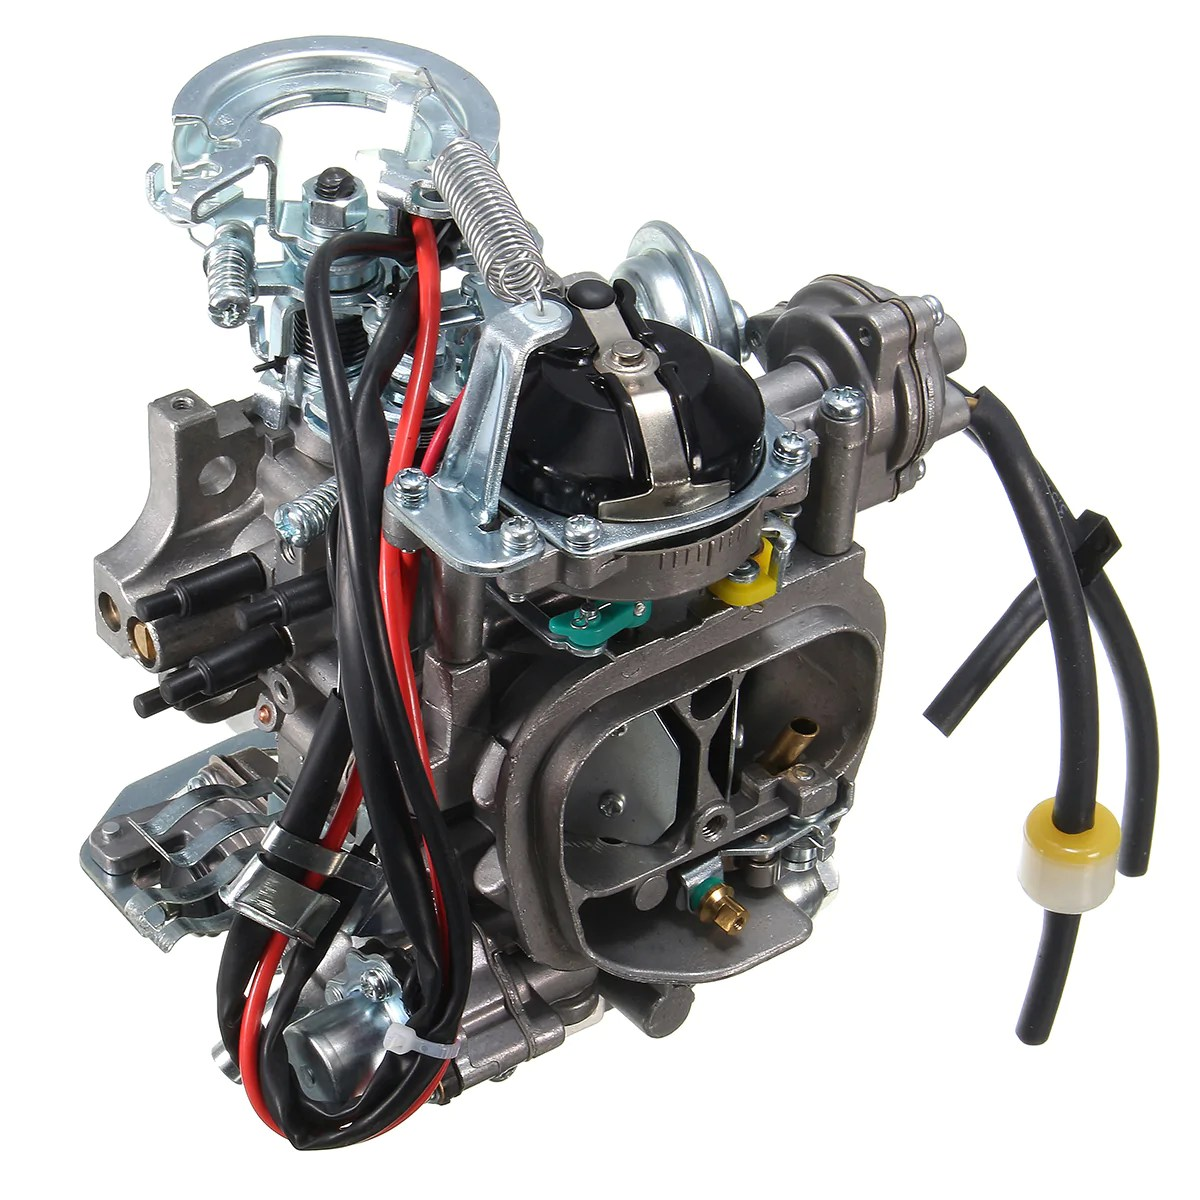 carb carburetor trucks for toyota 22r celica 4 runner style engine oil free and grease [ 1200 x 1200 Pixel ]